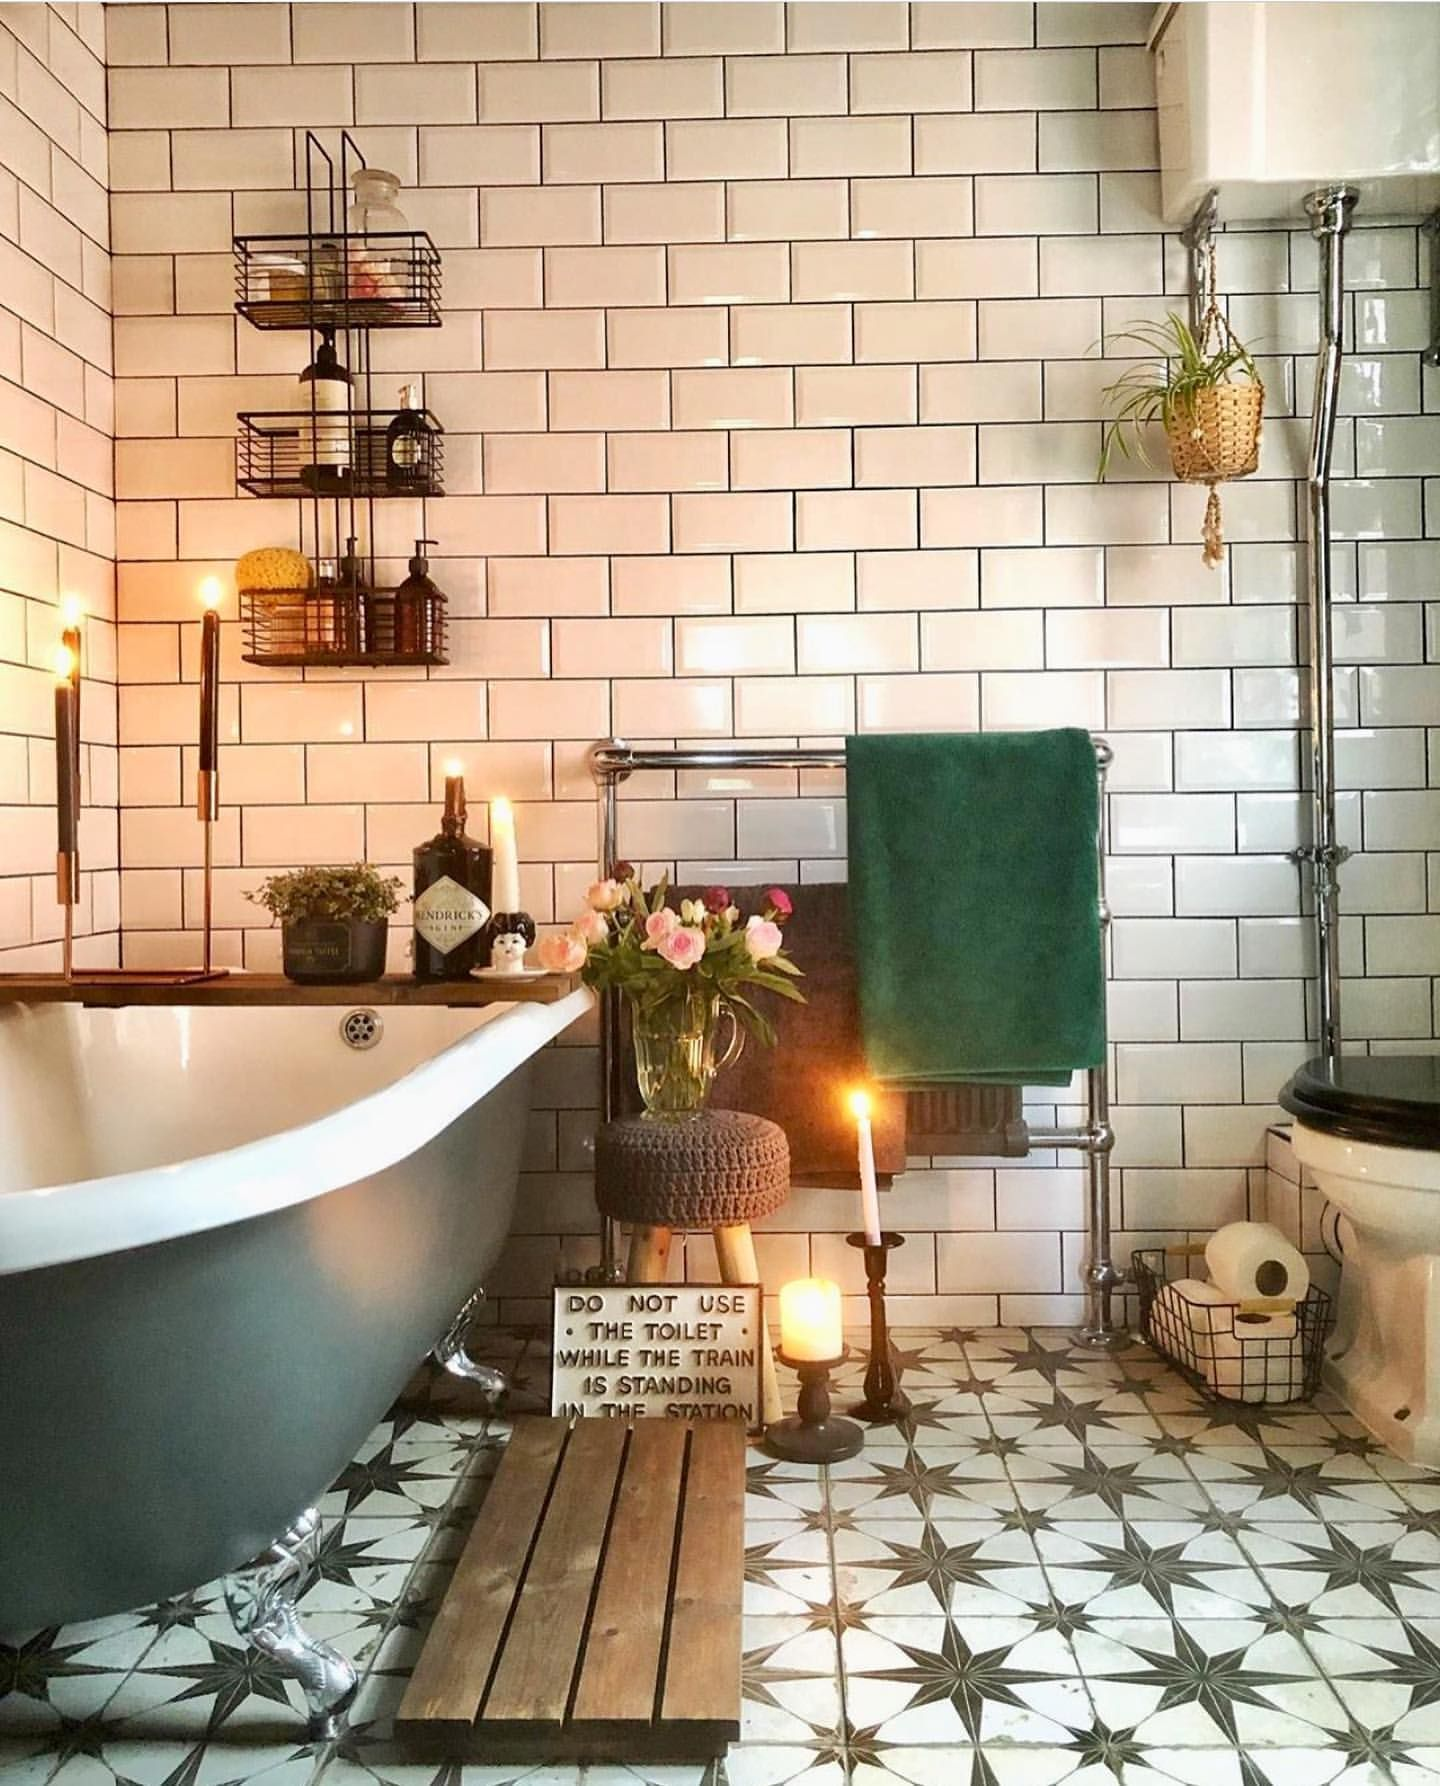 Steps To Redesign Your Dream Bathroom Posts Pics Green Bathroom Decor Fun Bathroom Decor Simple Bathroom Home decor dream decorate small bathroom